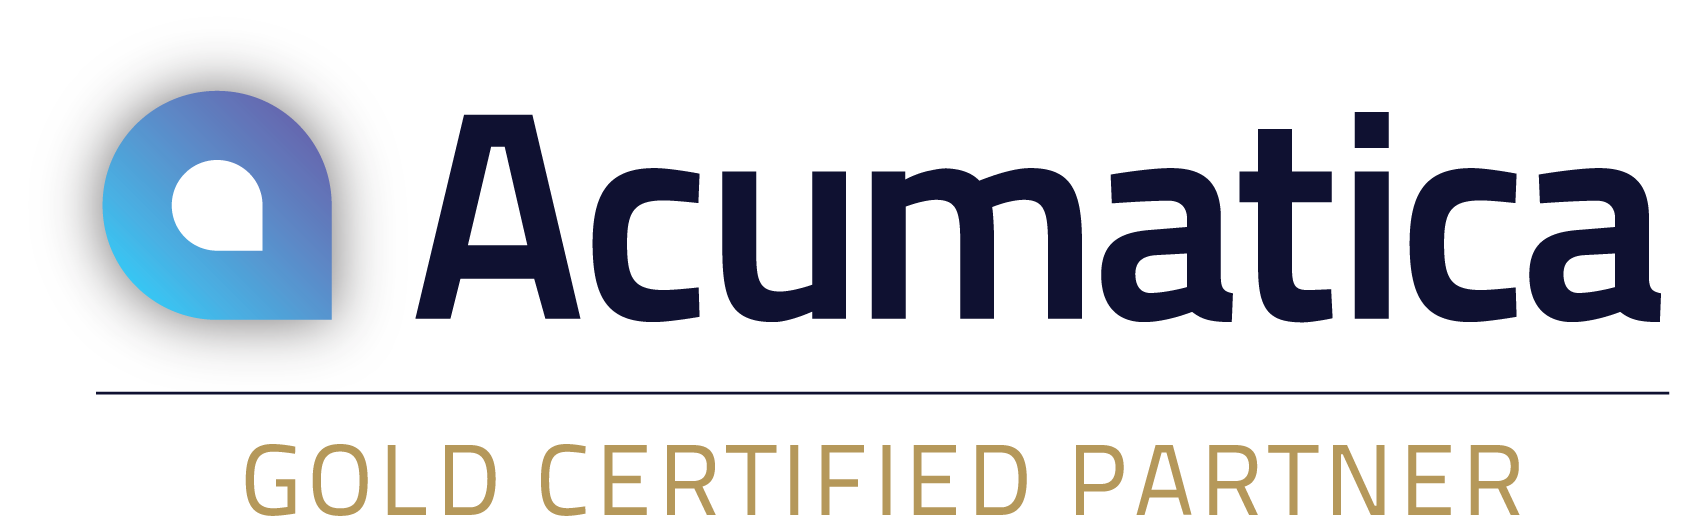 acumatica-cloud-erp-gold-certified-partner.png